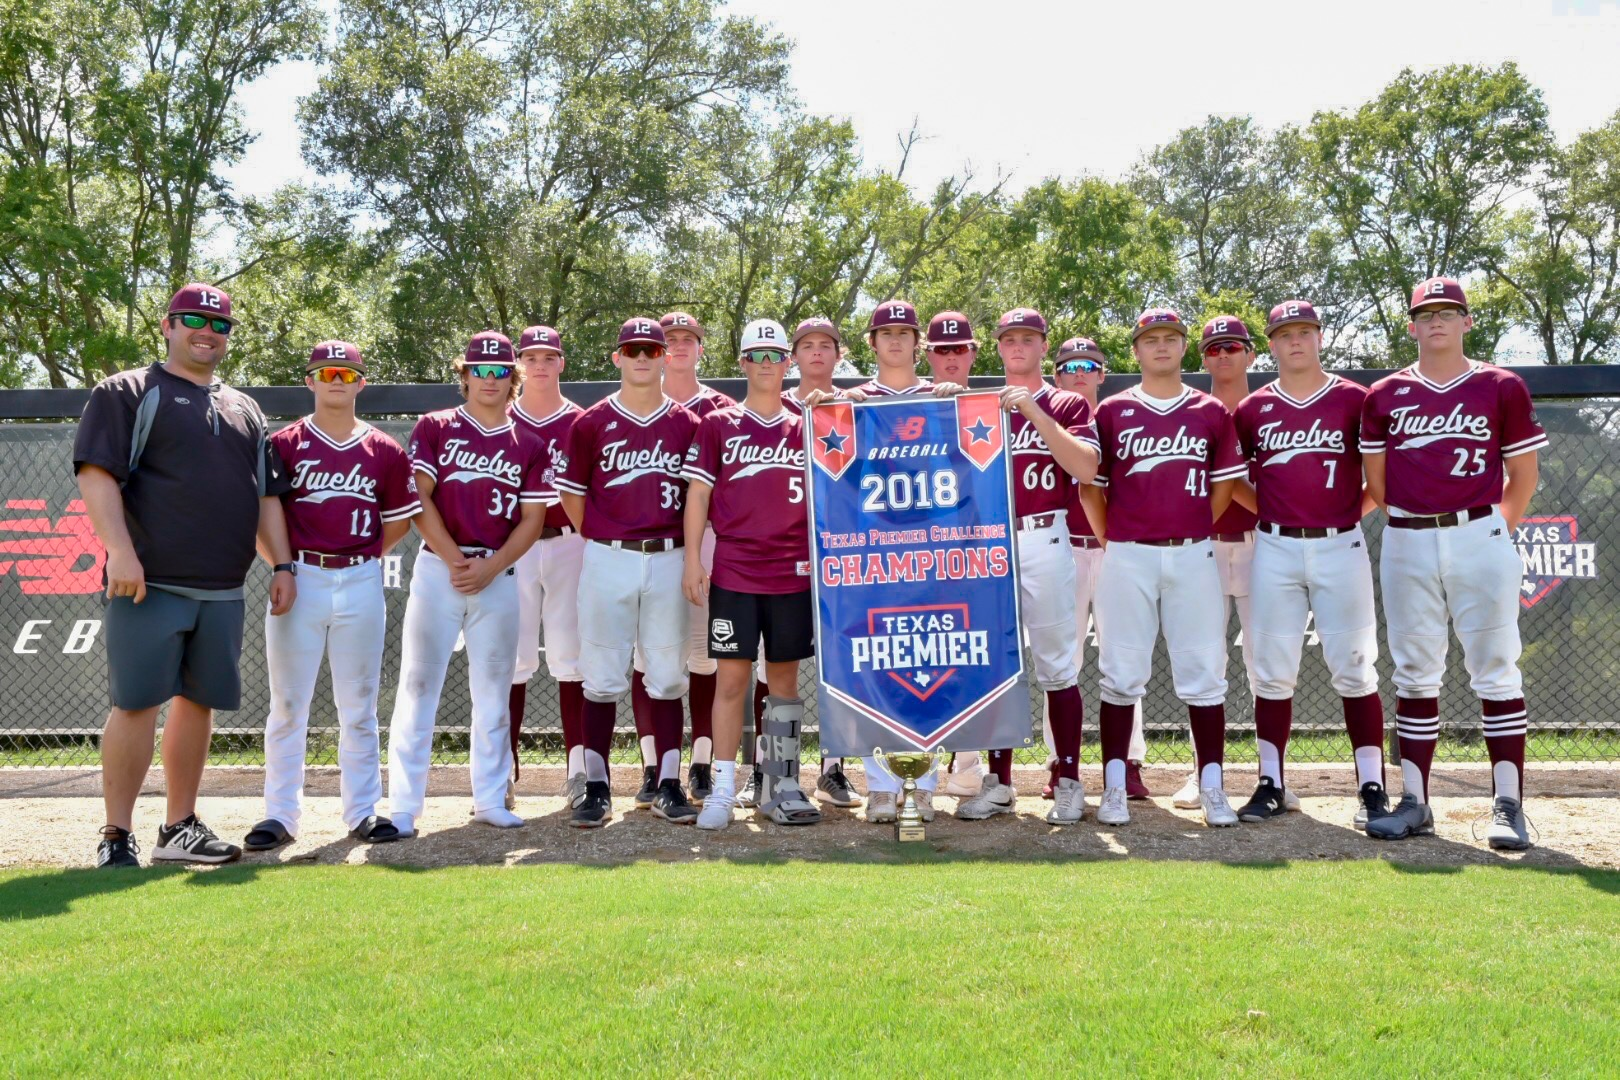 CHAMPIONS (NATIONAL DIVISION) - TWELVE (15U MAROON)